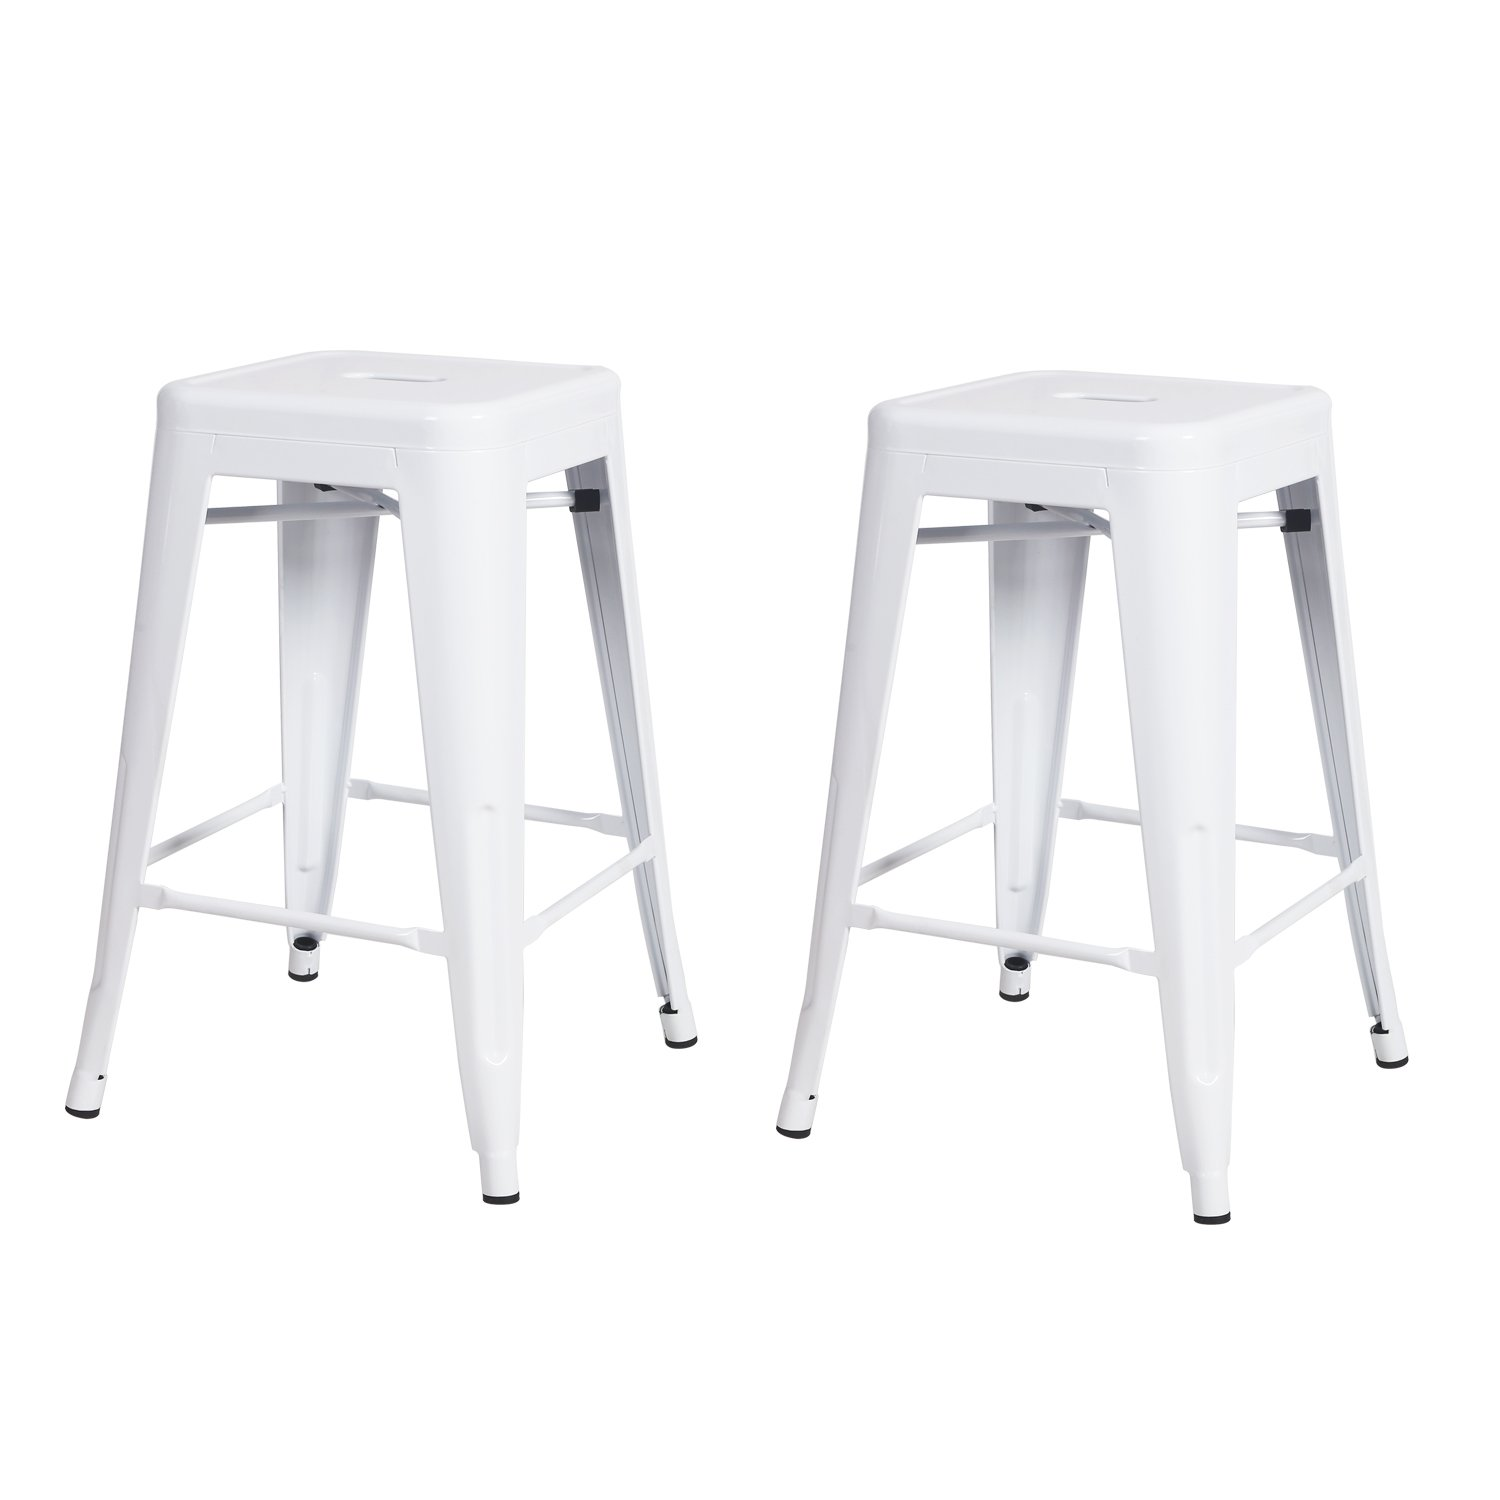 24 Metal Industrial Stools